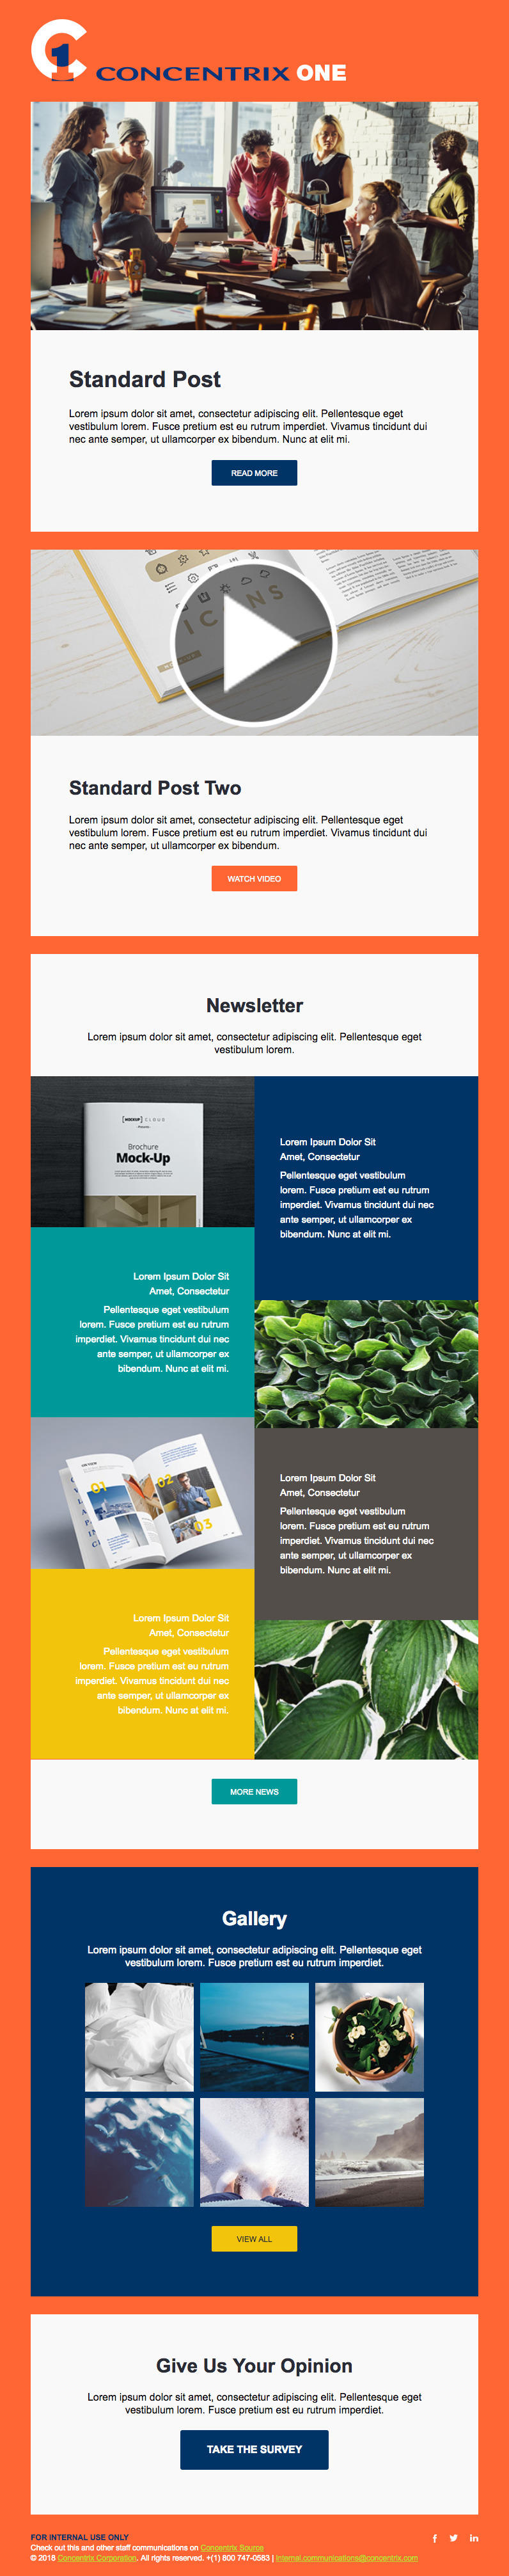 Concentrix 1 Application Email Template by Vikingjack